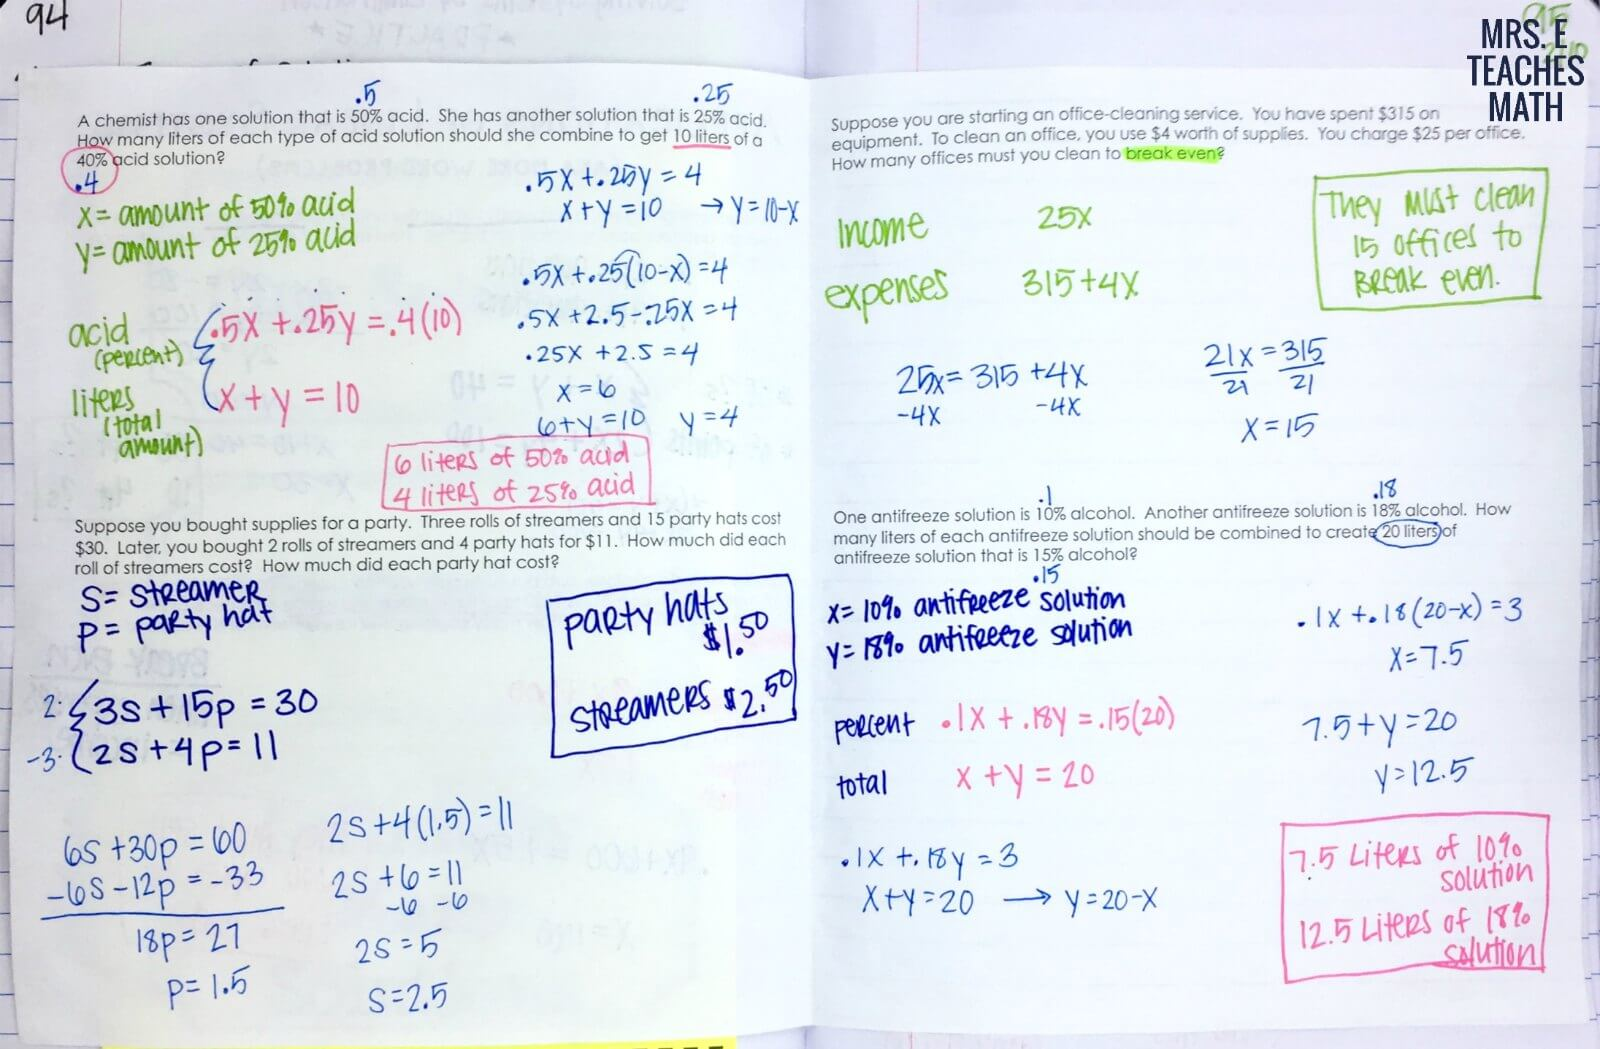 Systems of Linear Equations Word Problems INB Page   Mrs. E Teaches Math